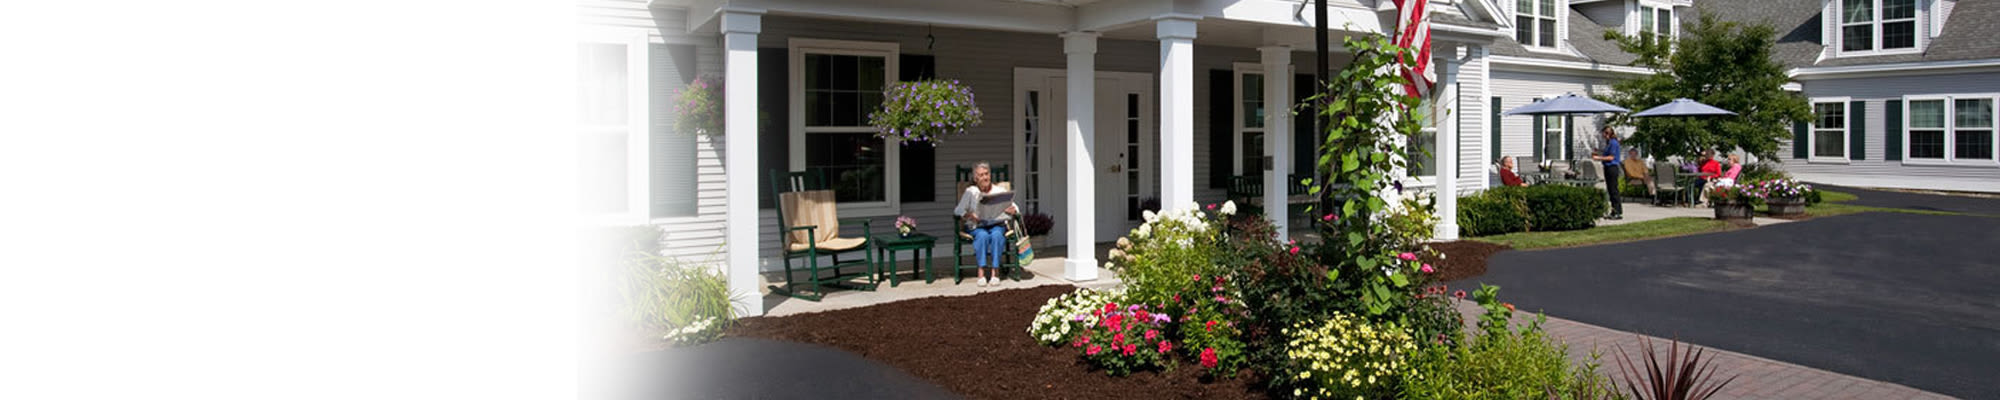 Assisted living at Woodstock Terrace in Woodstock, Vermont